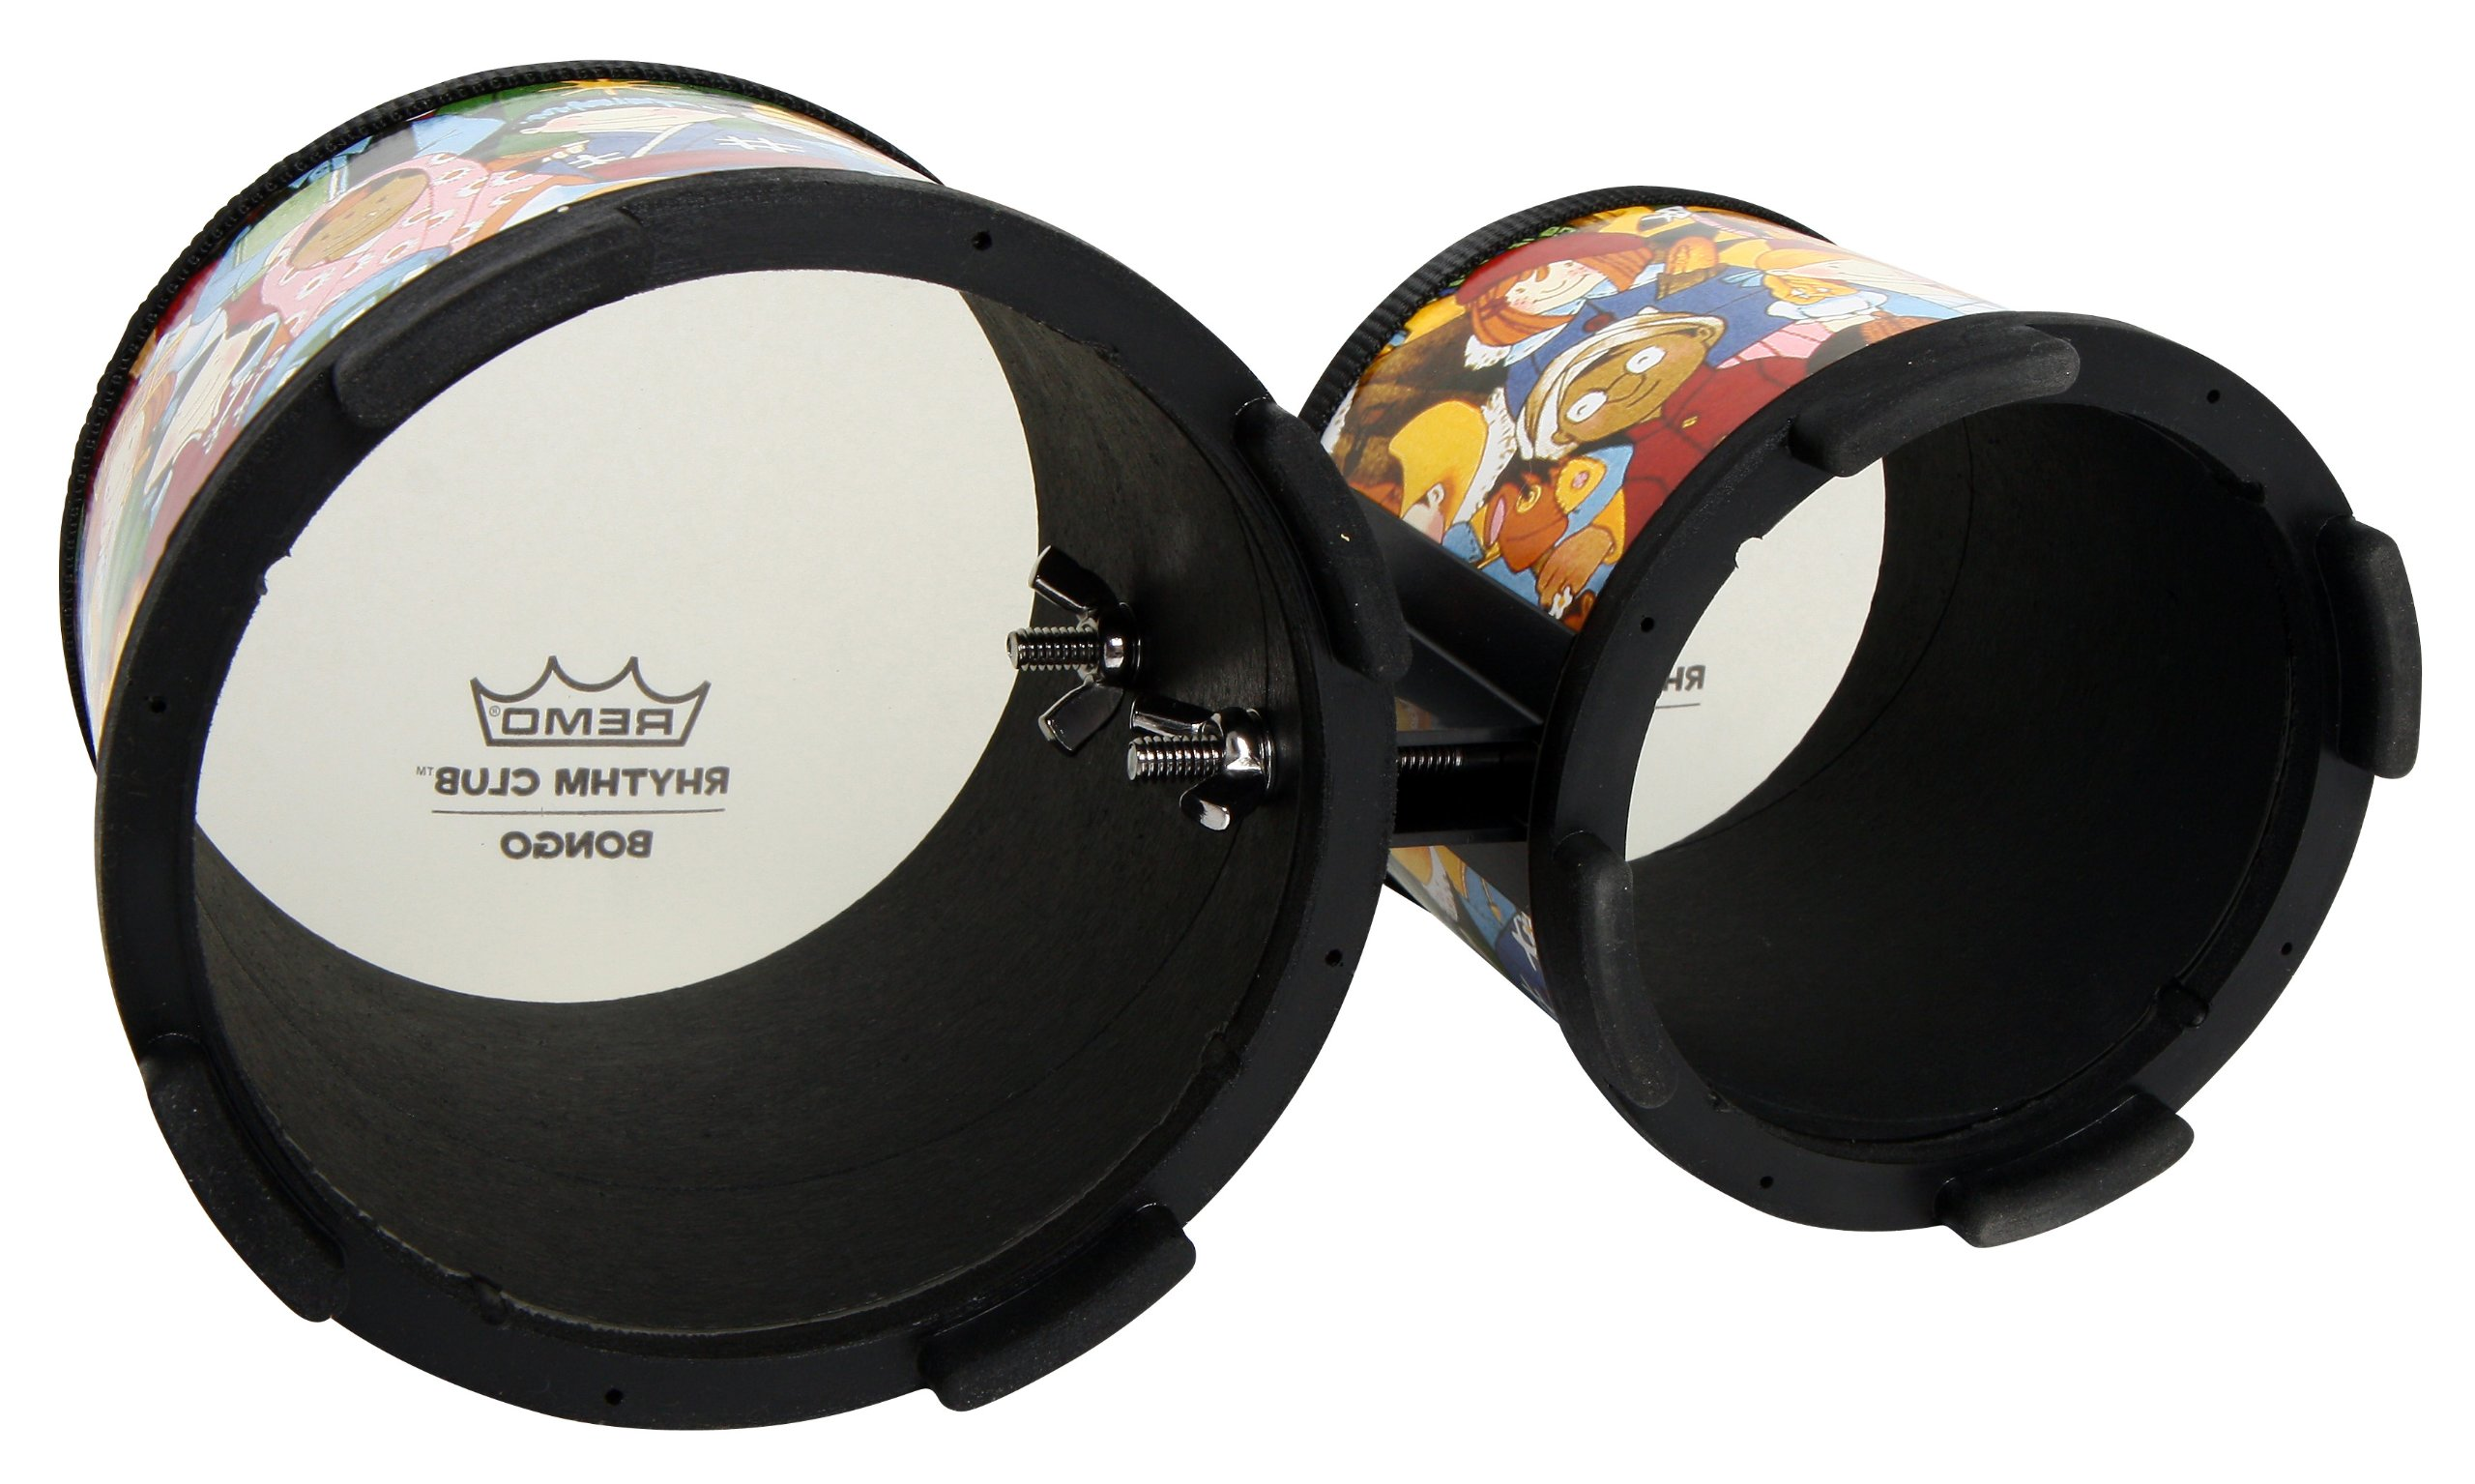 Remo RH-5600-00 Rhythm Club Bongo Drum - Rhythm Kids, 5''-6''